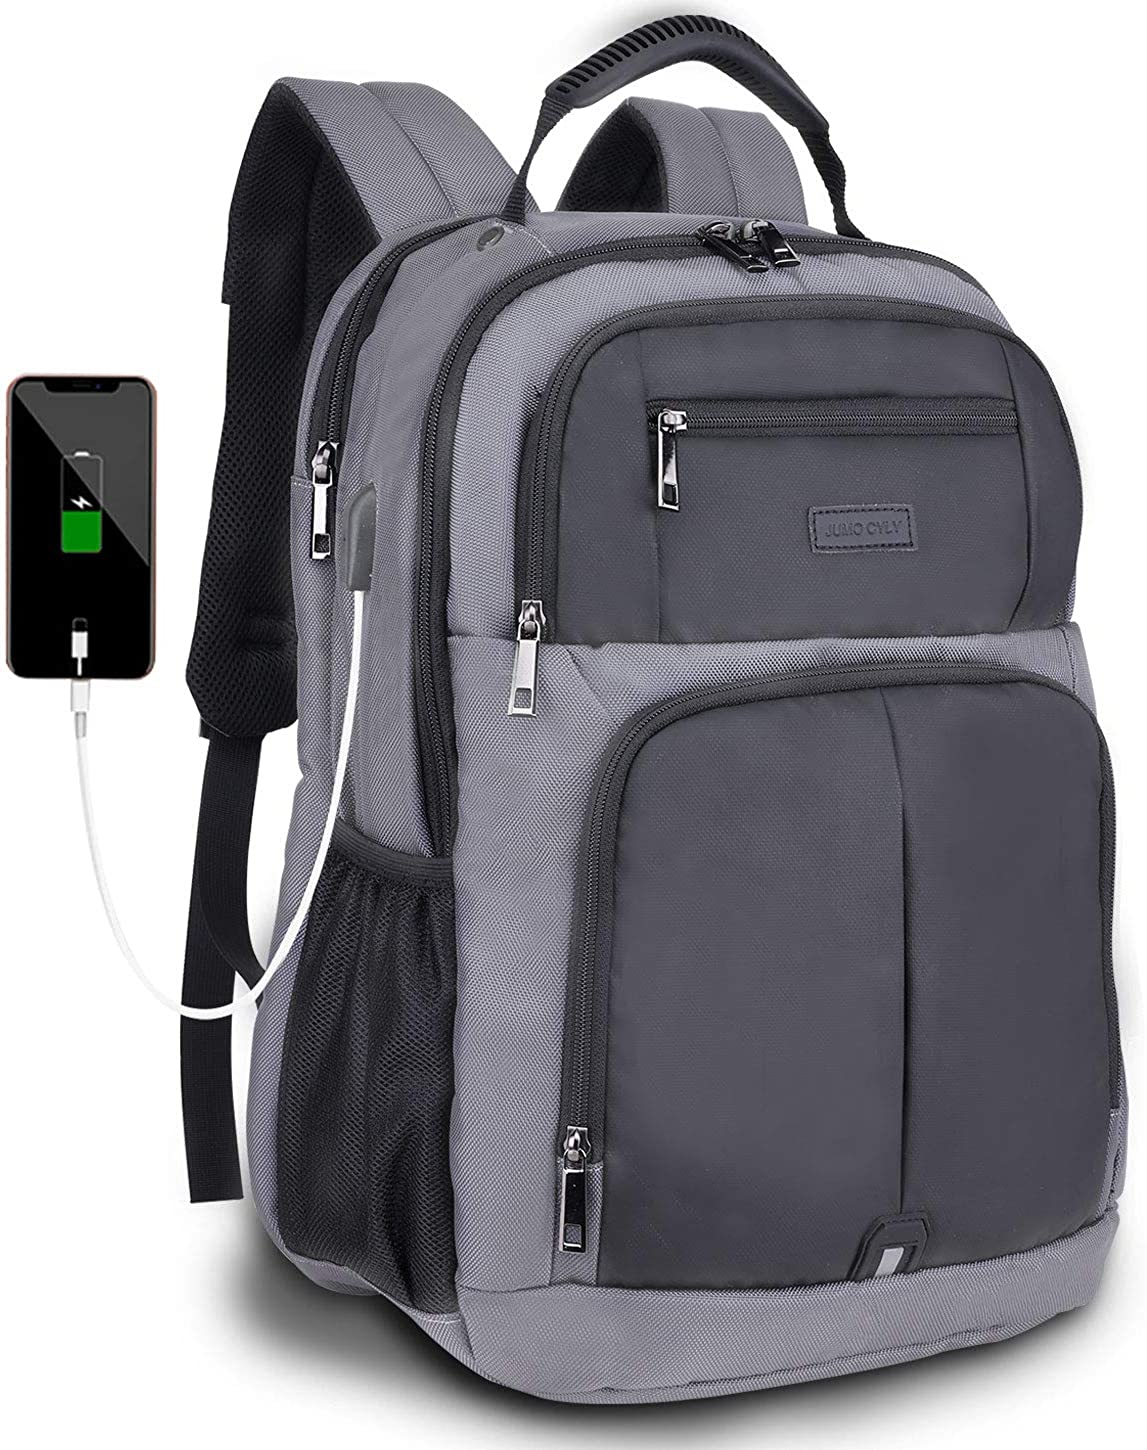 Travel Laptop Backpack, Business School Backpack with USB Fits 16 Inch Notebook Computer Bag for Women Men